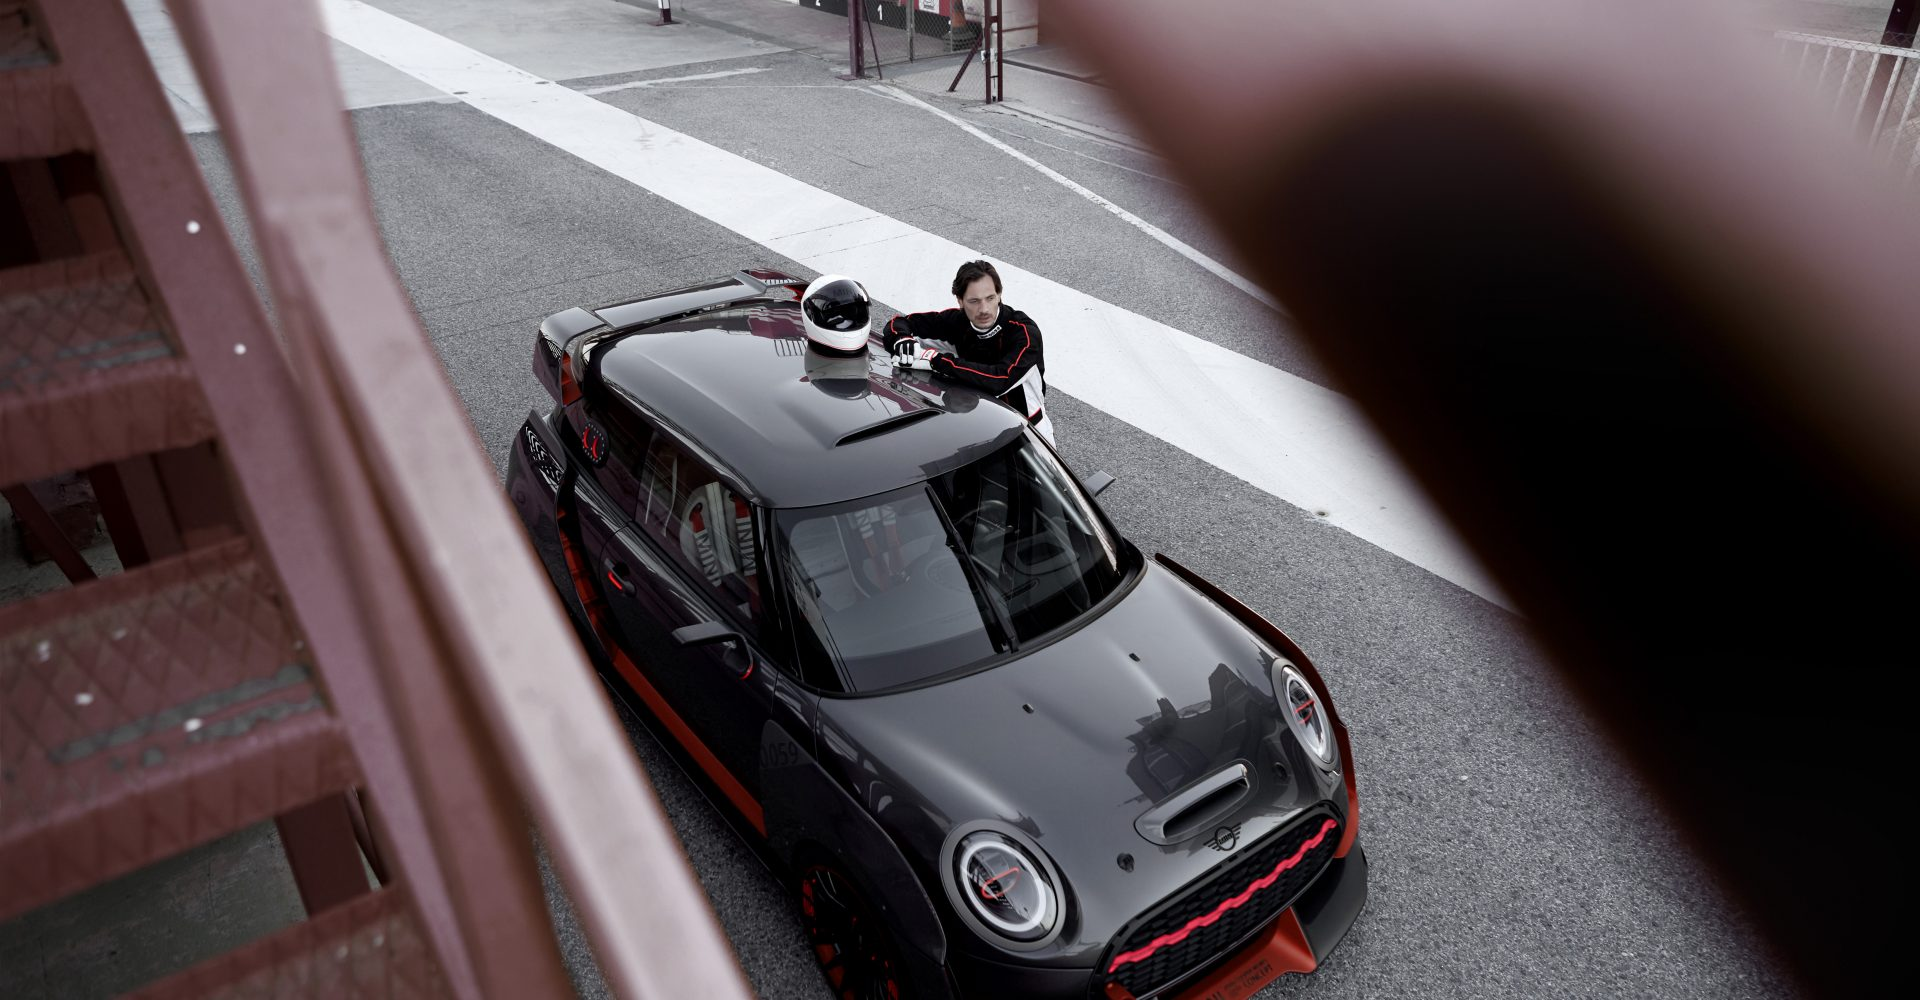 5 things you need to know about the Mini John Cooper Works GP Concept